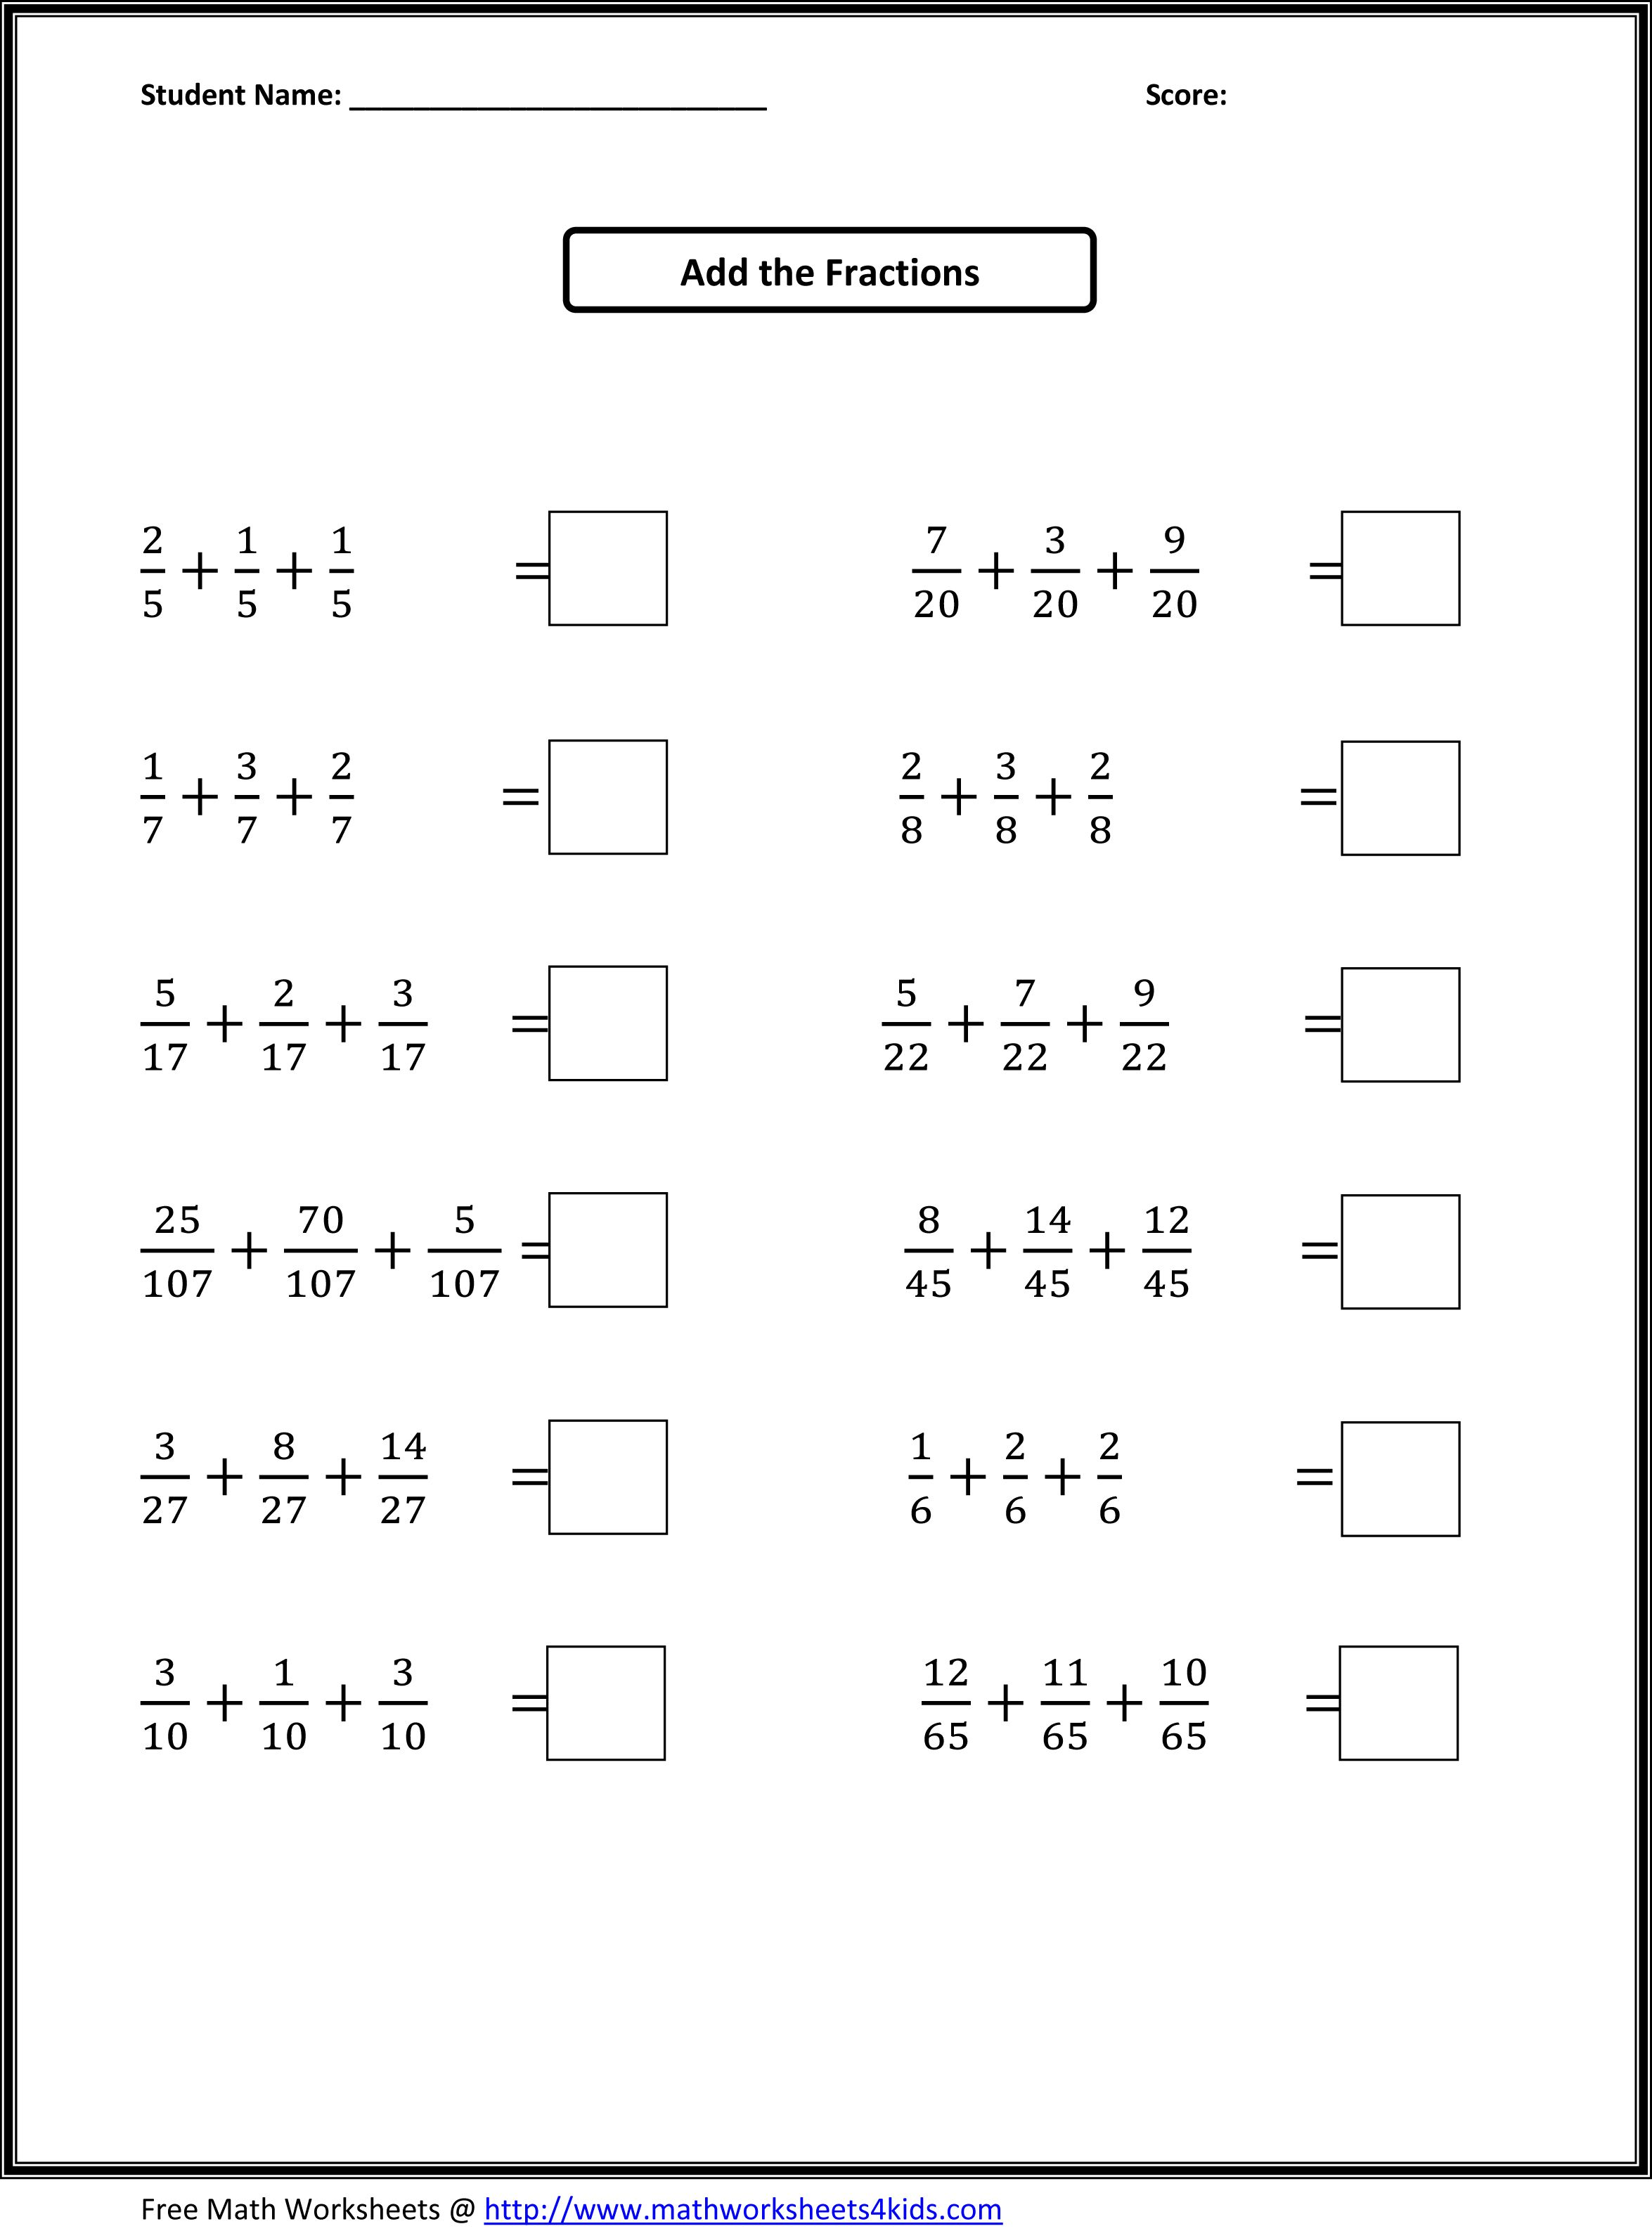 Worksheet Math Printable Worksheets 4th Grade 1000 images about math worksheets on pinterest 4th grade geometry and math